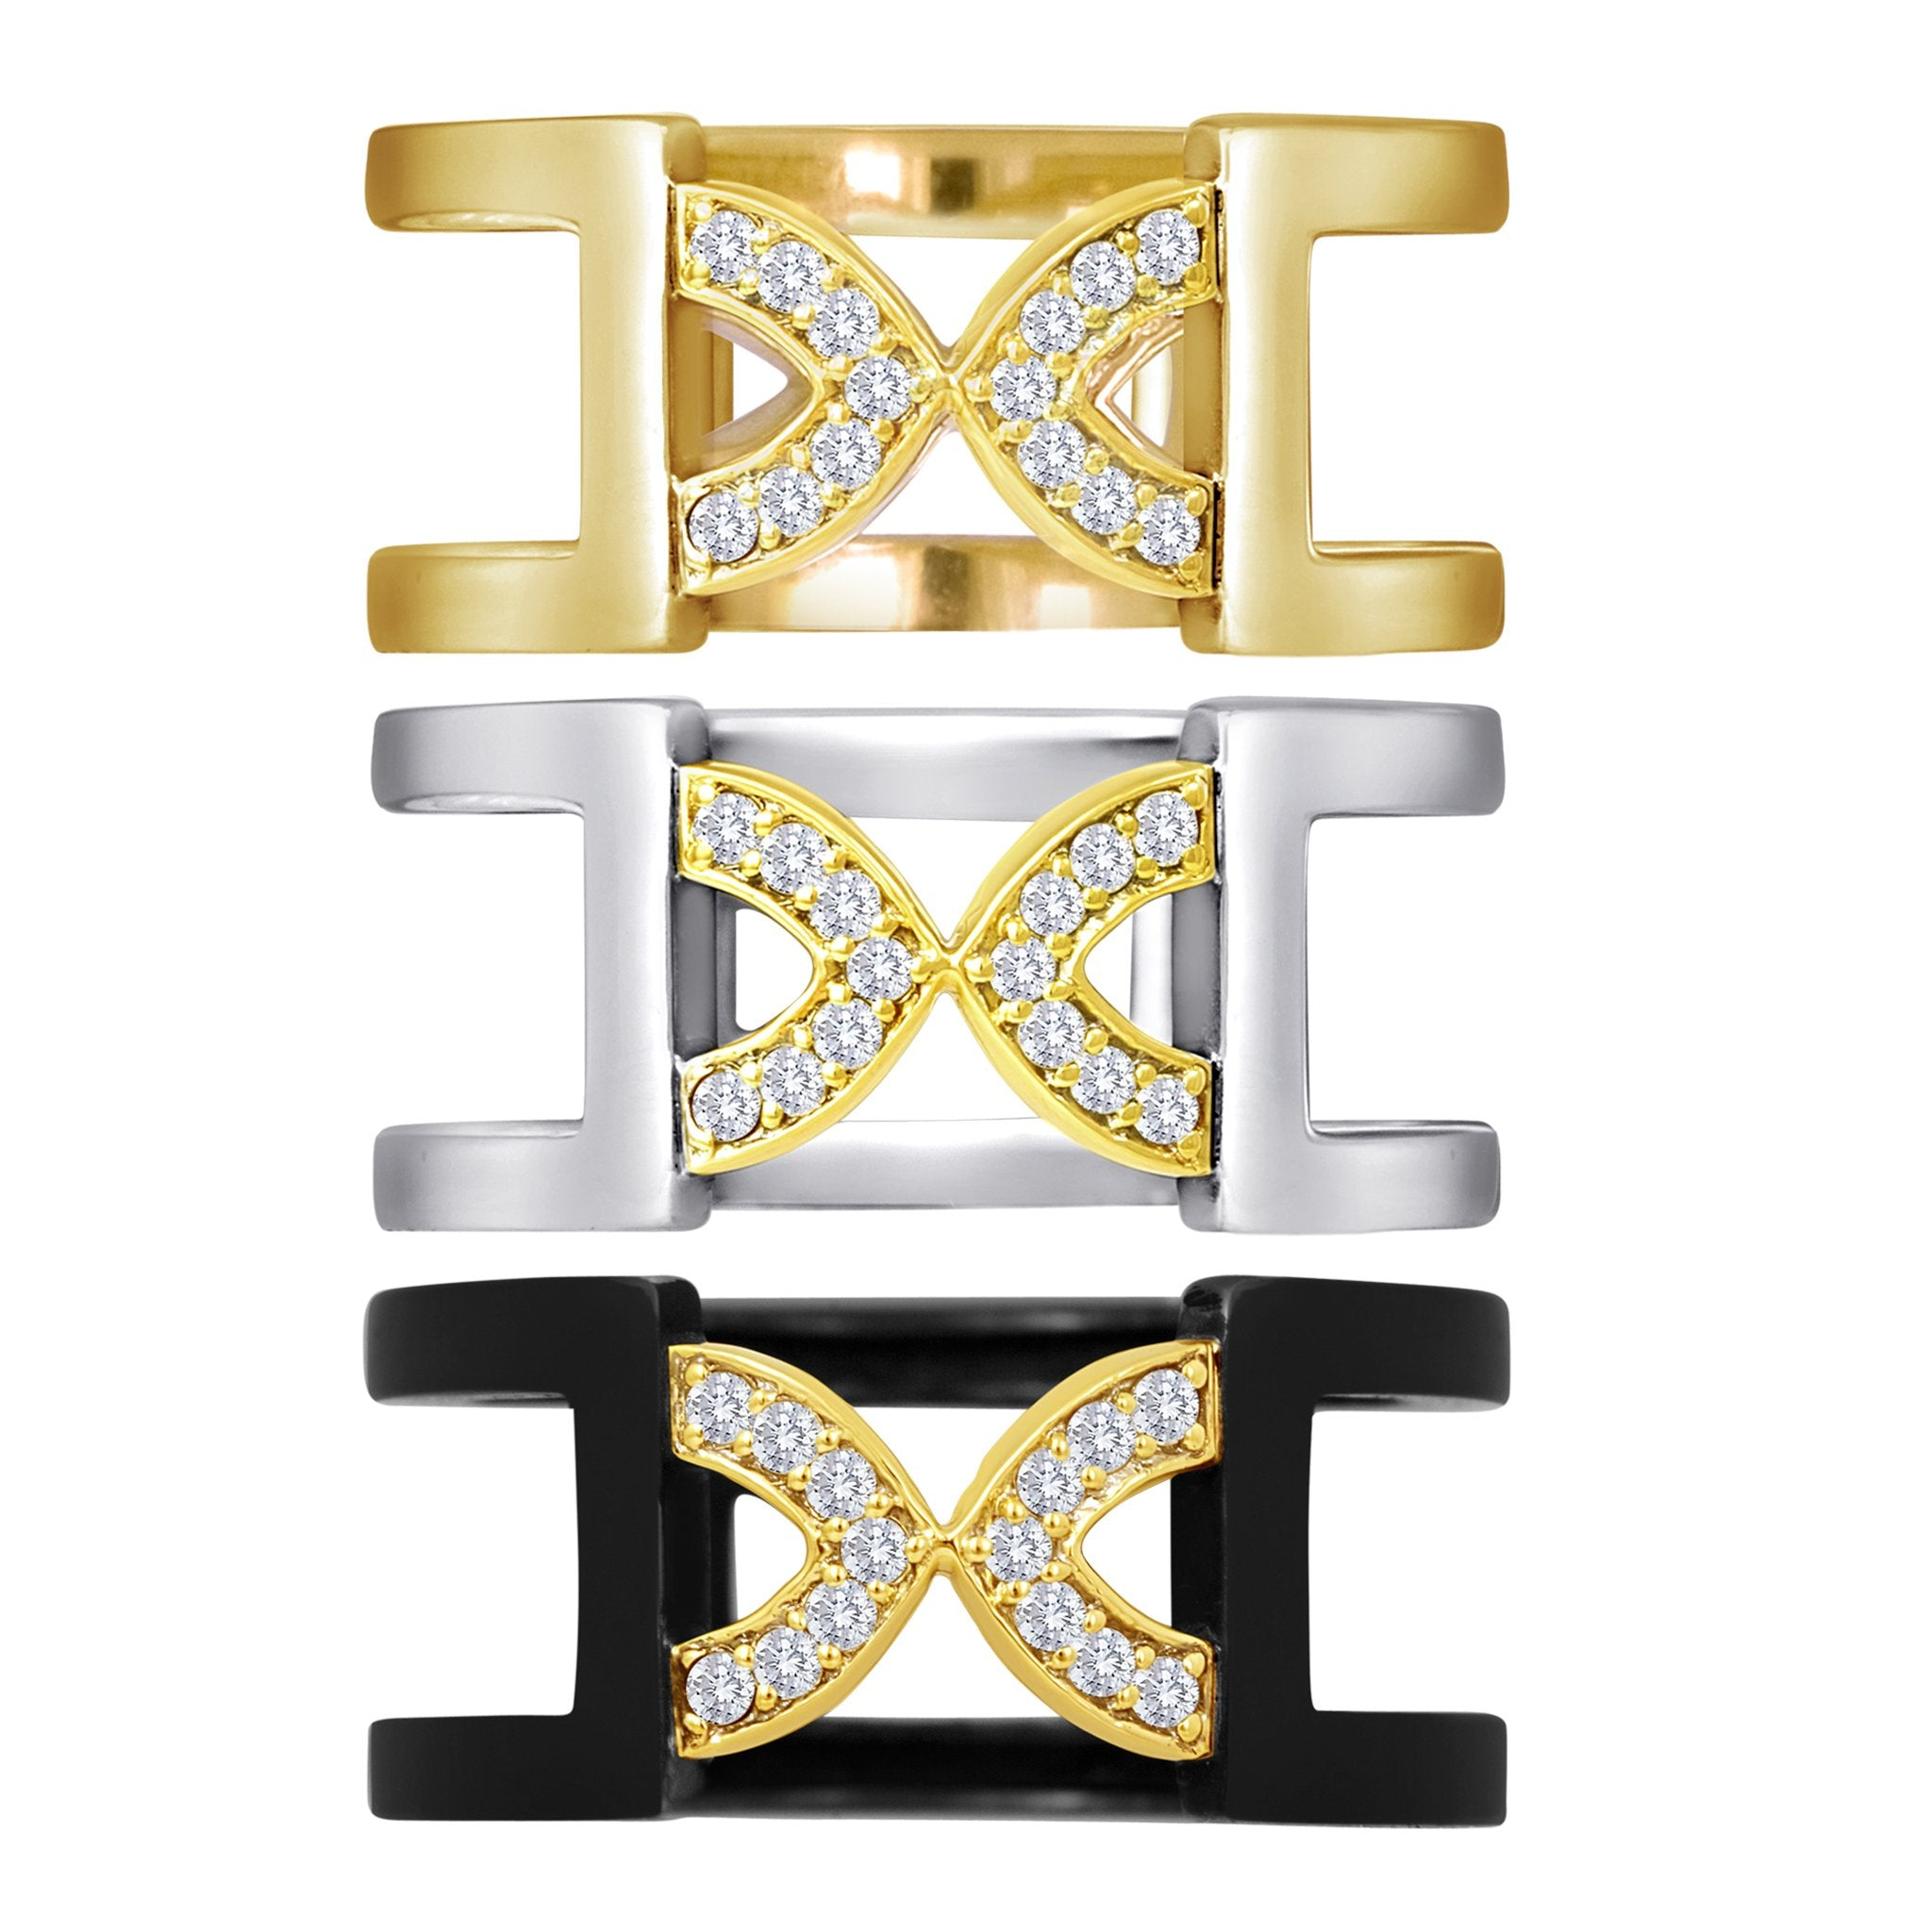 Arch Band Ring: 18k Gold, Silver, Diamonds